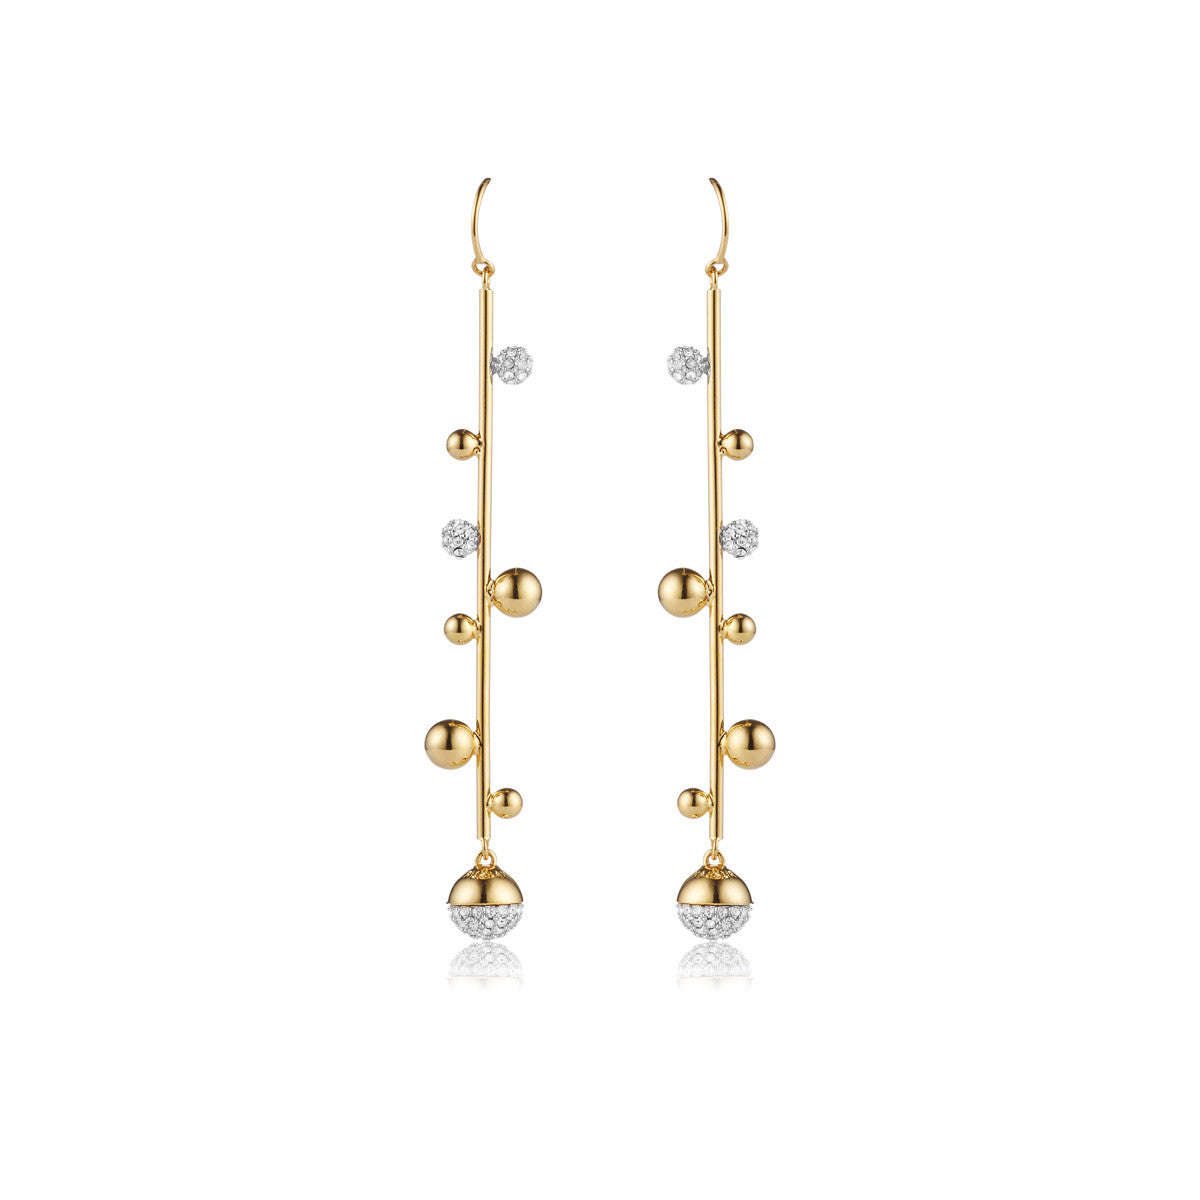 Solid brass, 18K gold plated Galaxy earrings set with Swarovski® crystal pavè detailing – front